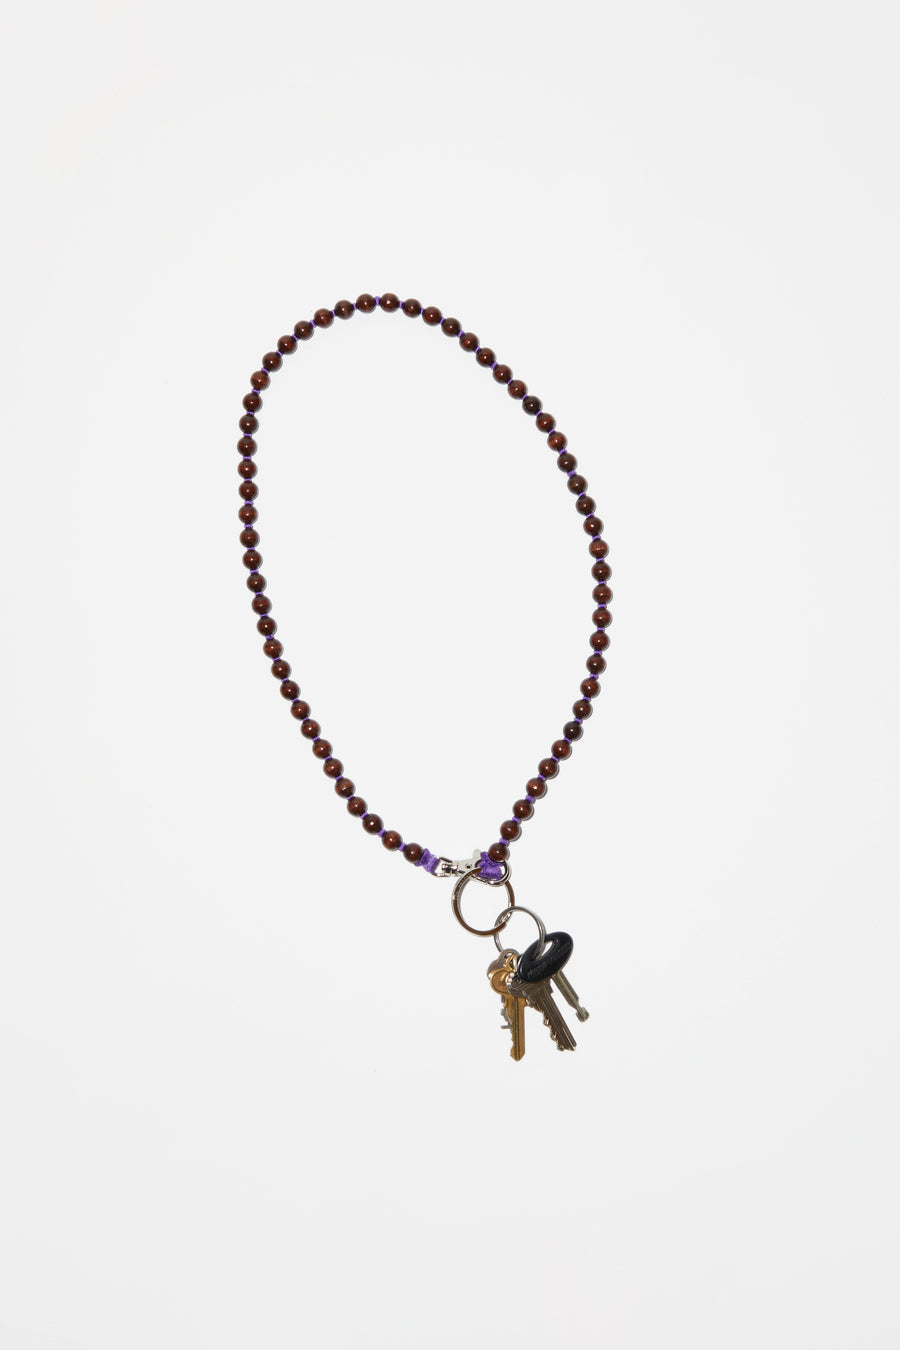 Ina Seifart Perlen Long Keyholder in Brown with Purple Thread